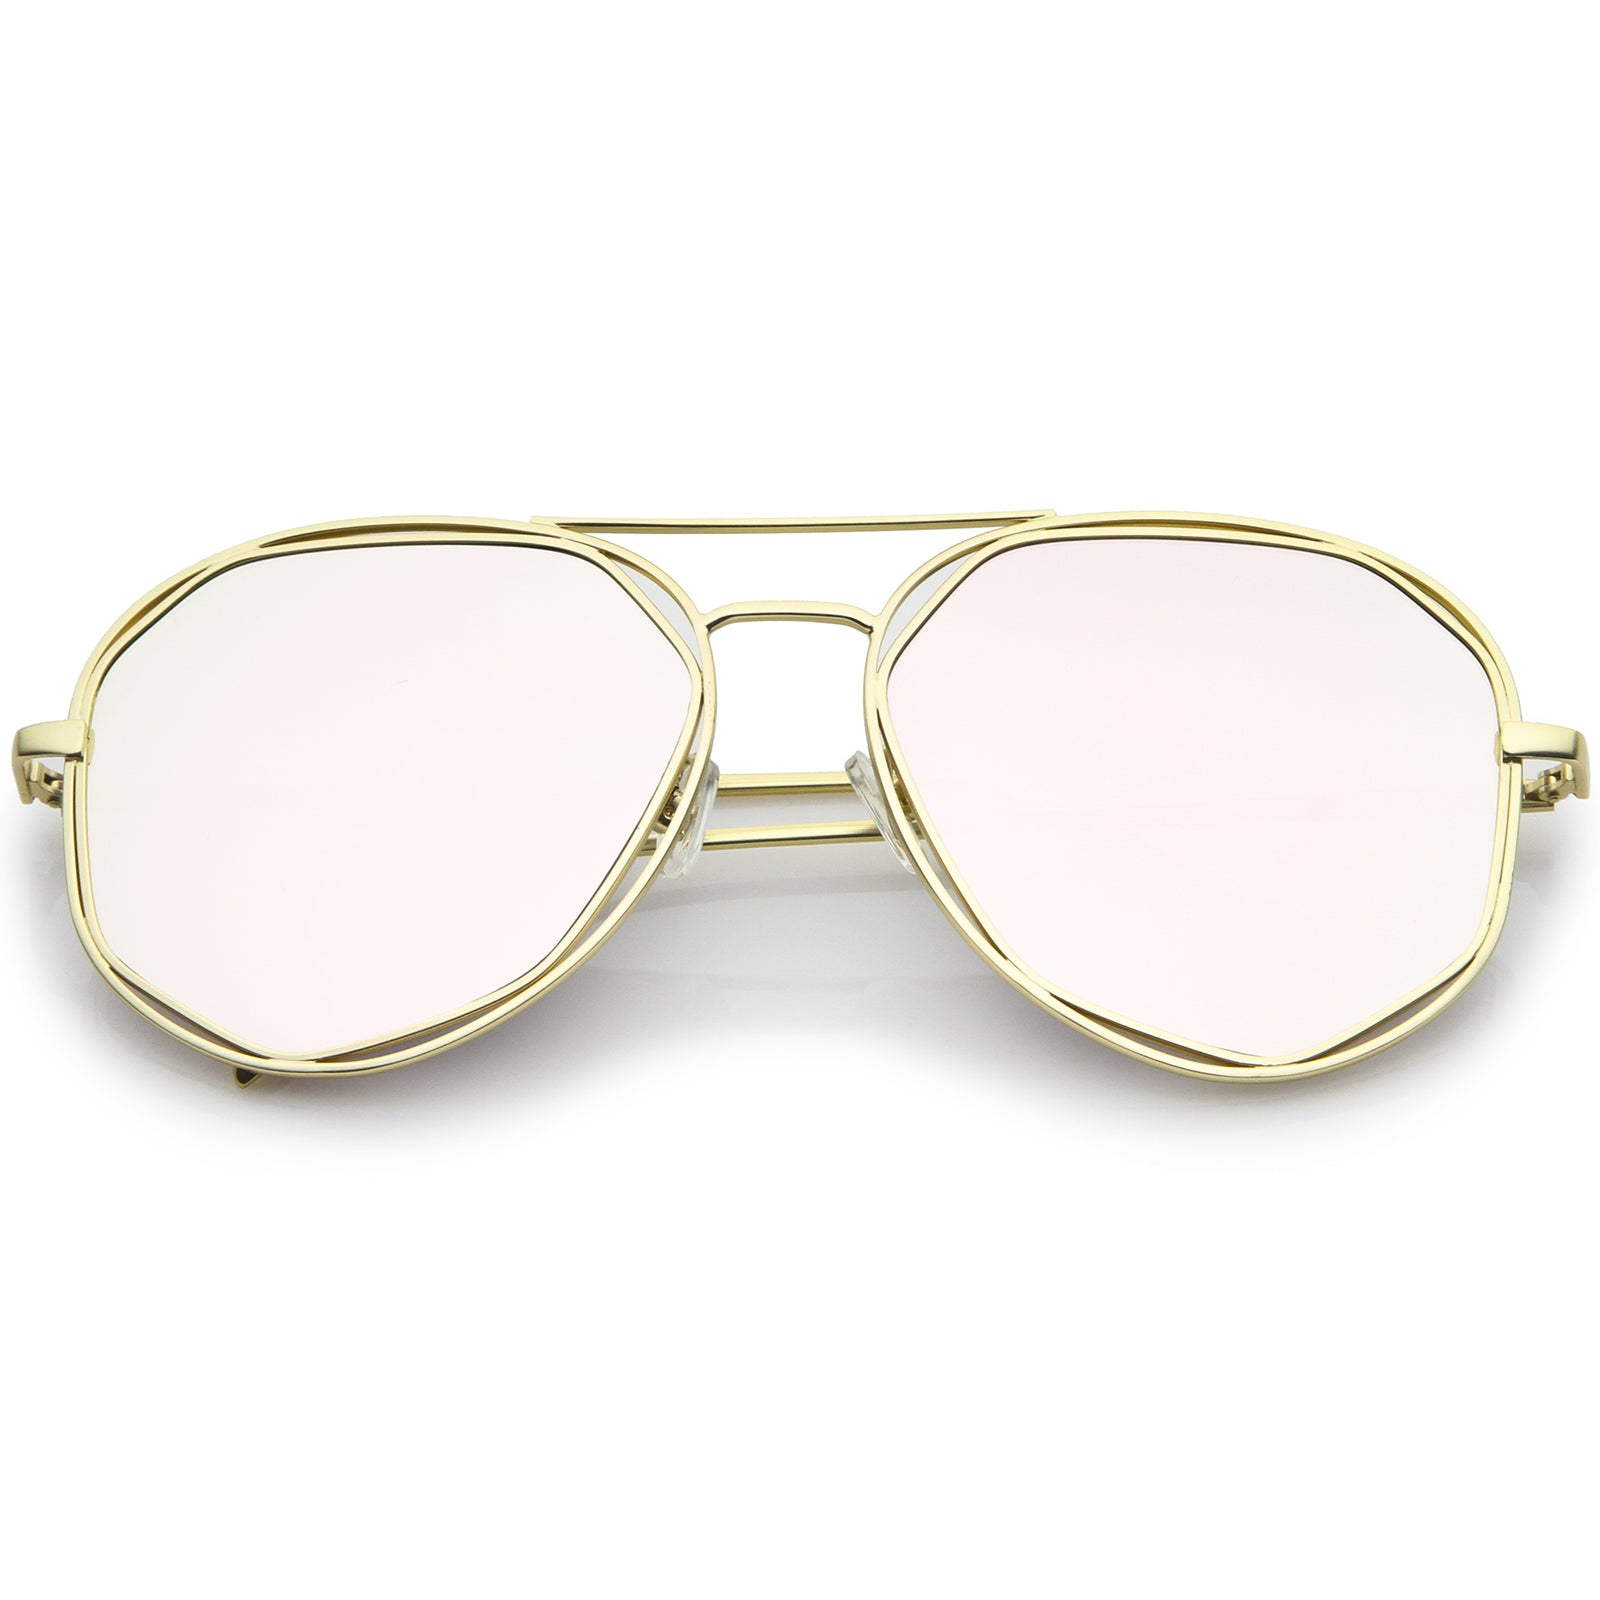 Geometric Hexagonal Metal Frame Colored Mirror Flat Lens Aviator Sunglasses 60mm - sunglass.la